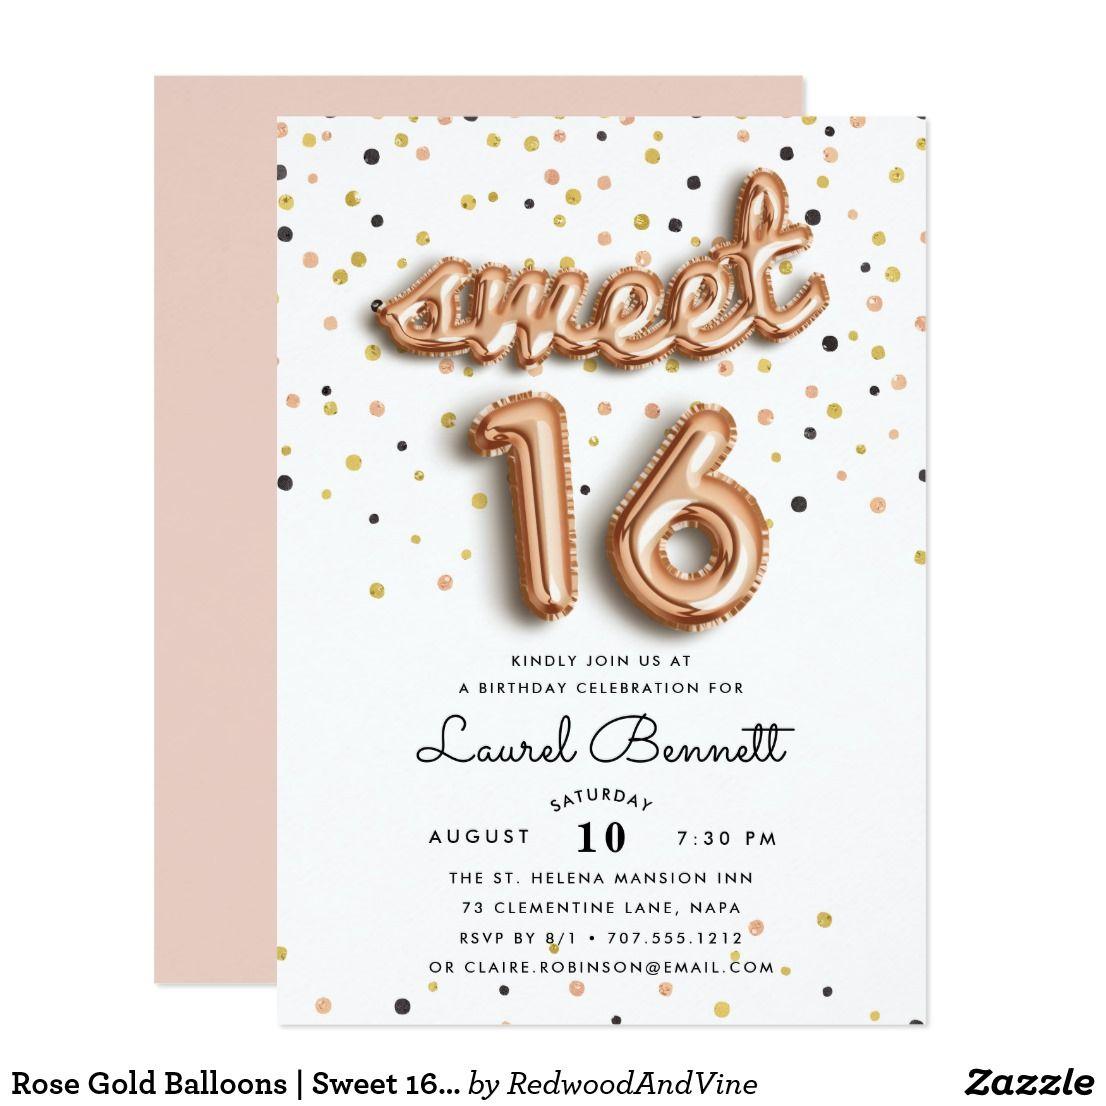 Rose gold balloons sweet 16 party invitation gold balloons rose gold balloons sweet 16 party invitation monicamarmolfo Image collections